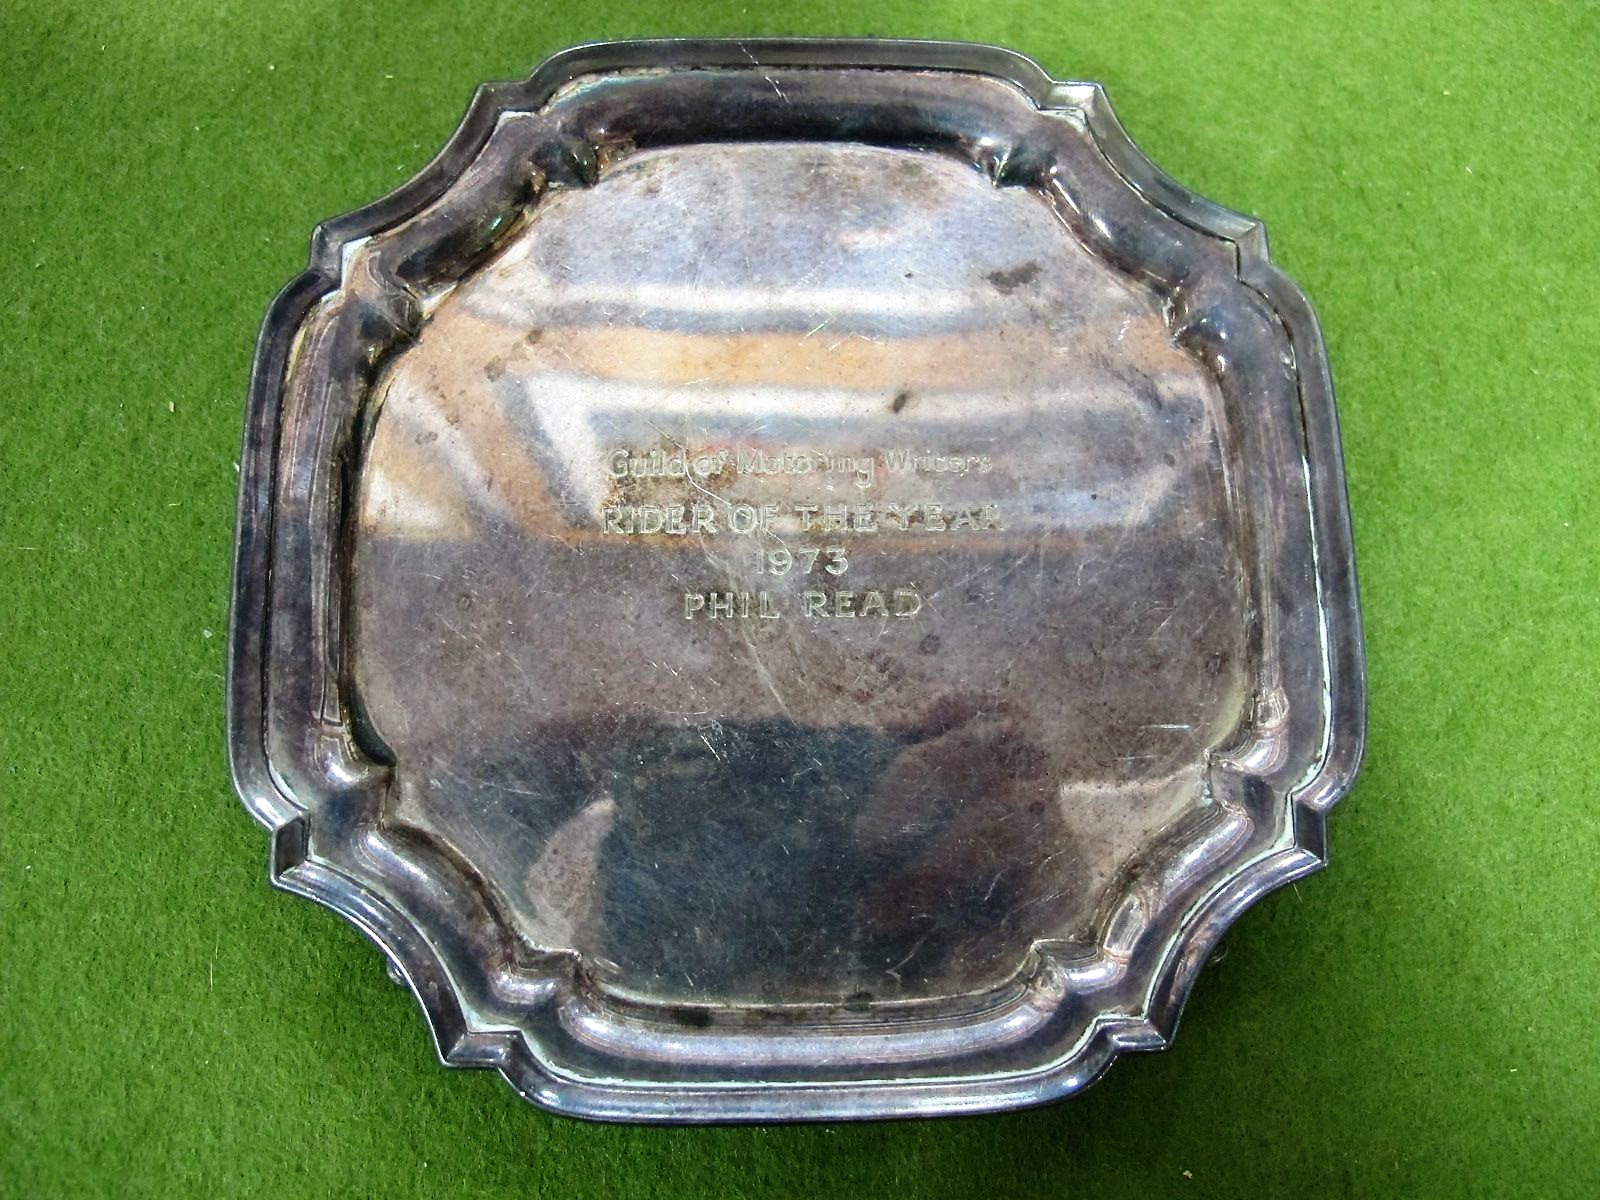 Lot 31 - Silver Guild of Motoring Writers, 'Rider of The Year Trophy' 1973 to Phil Read